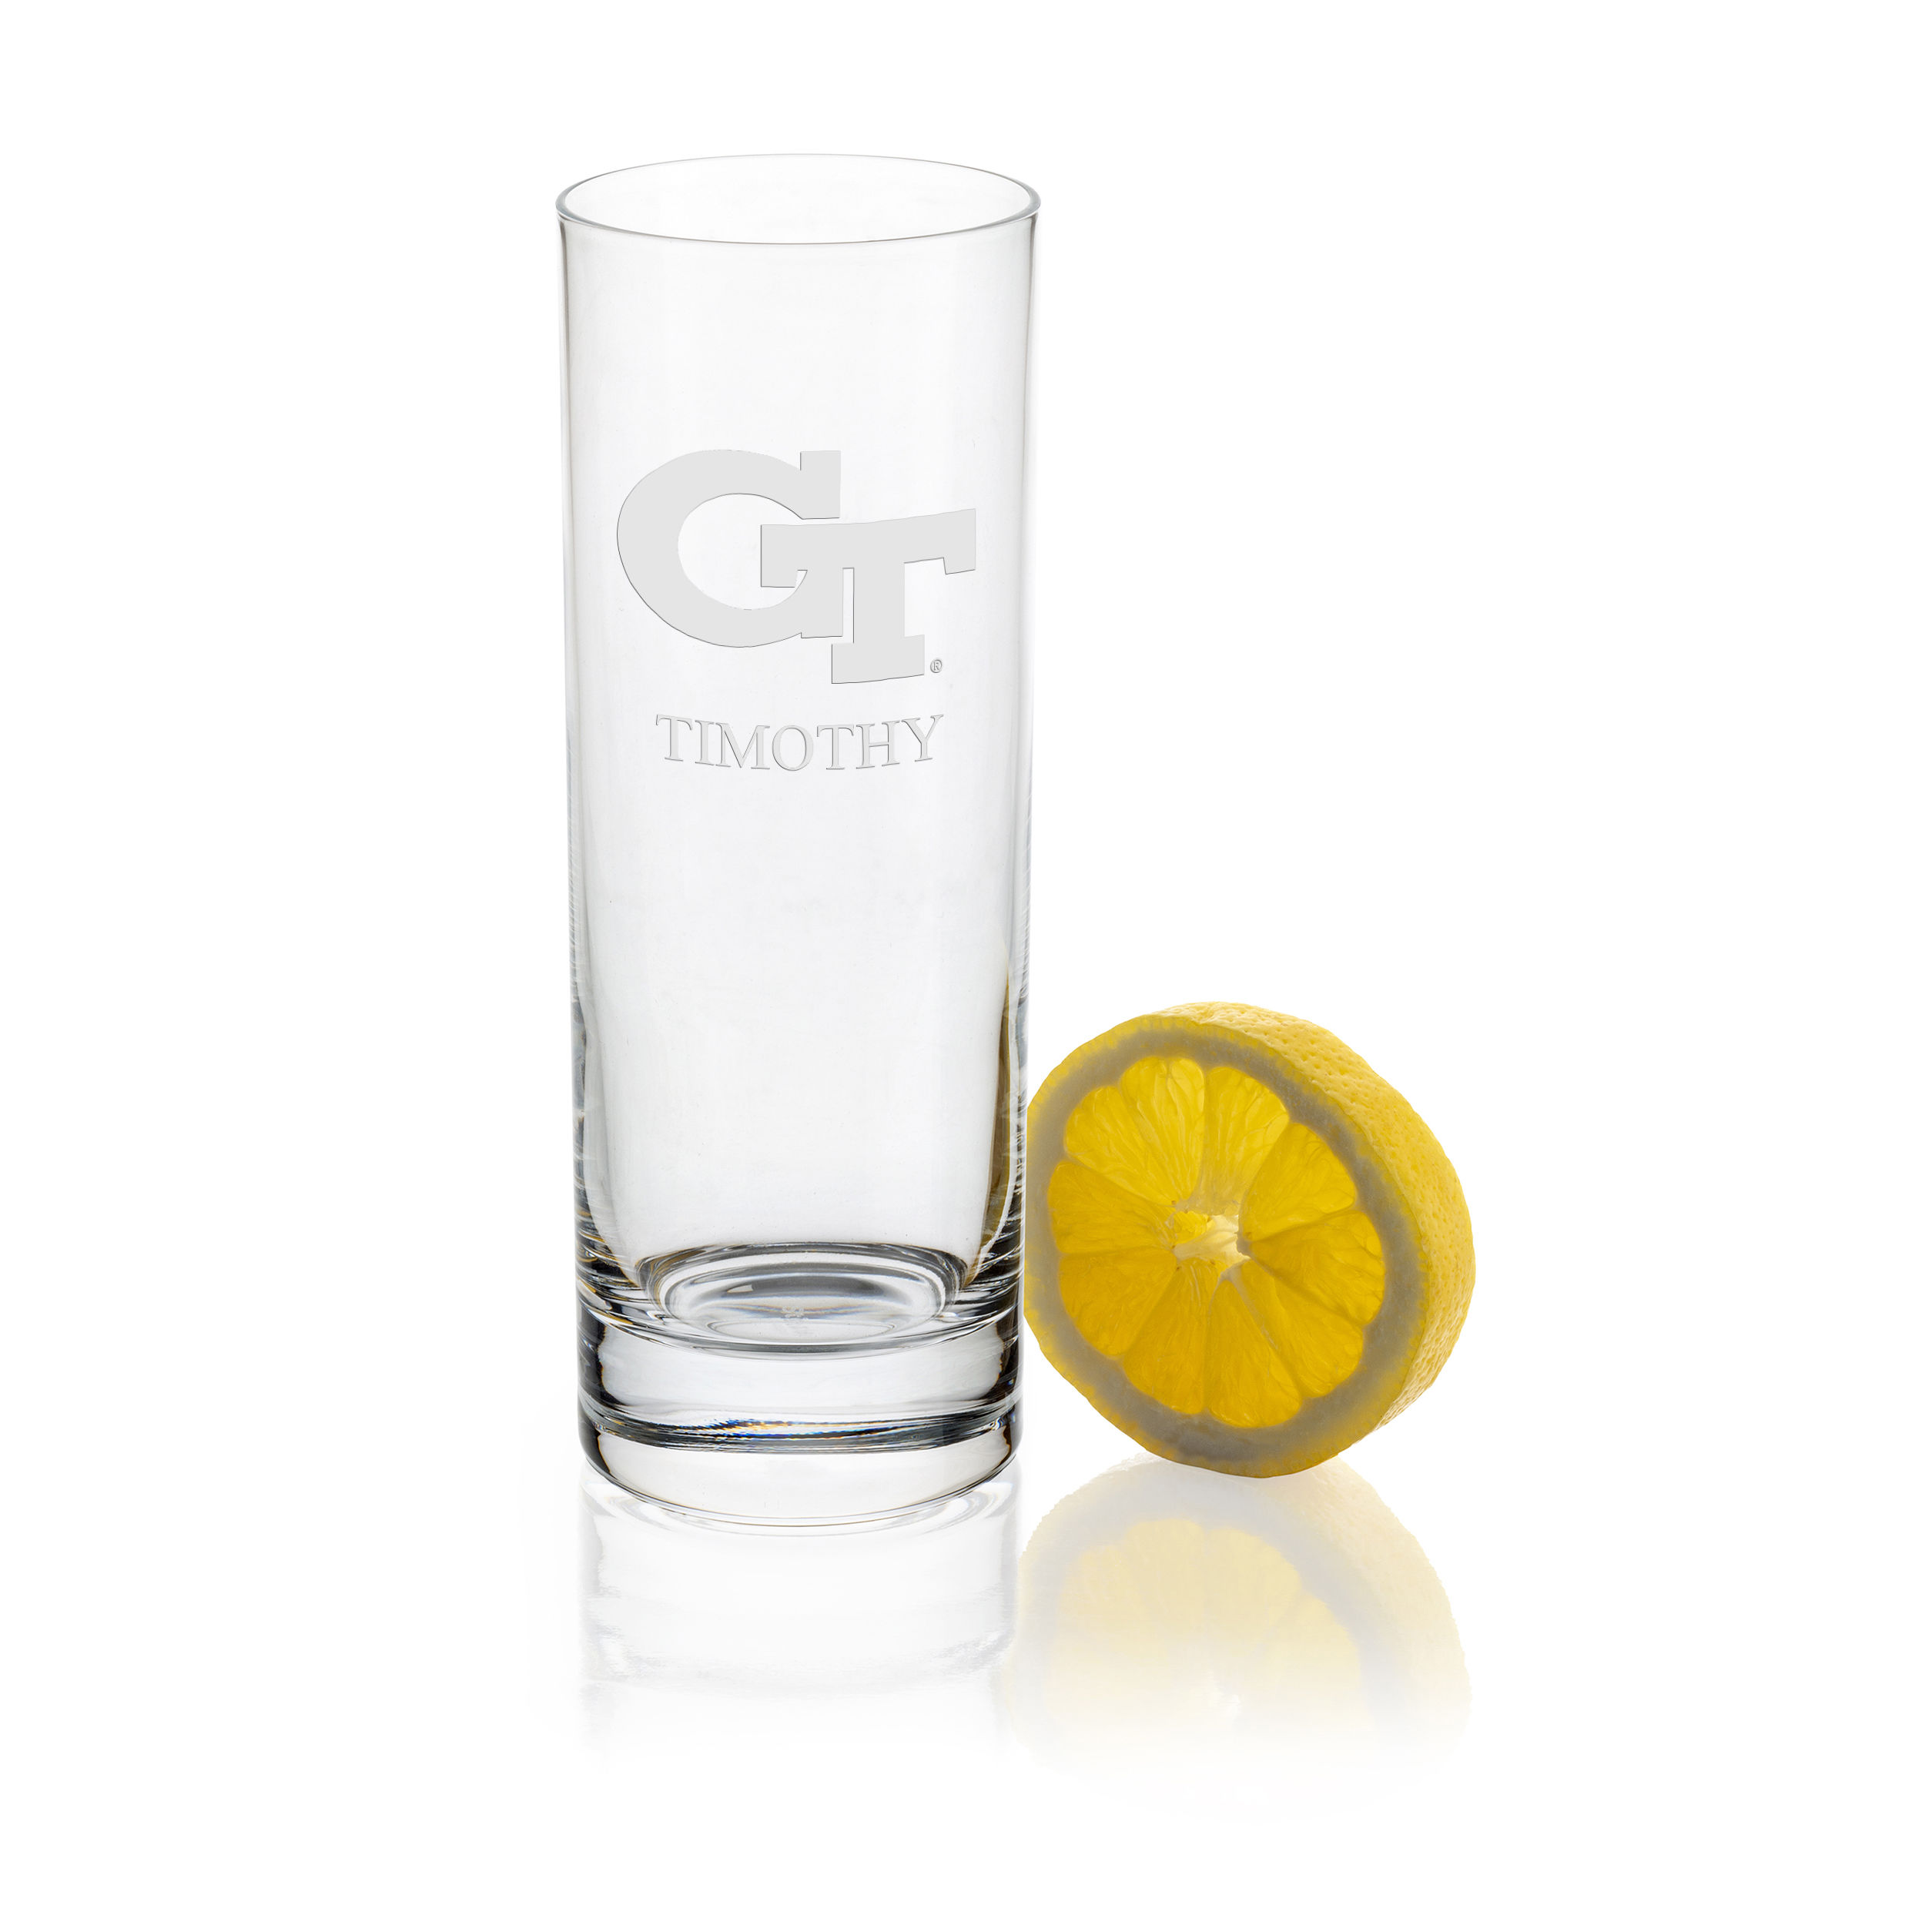 Georgia Tech Iced Beverage Glasses - Set of 4 - Image 1